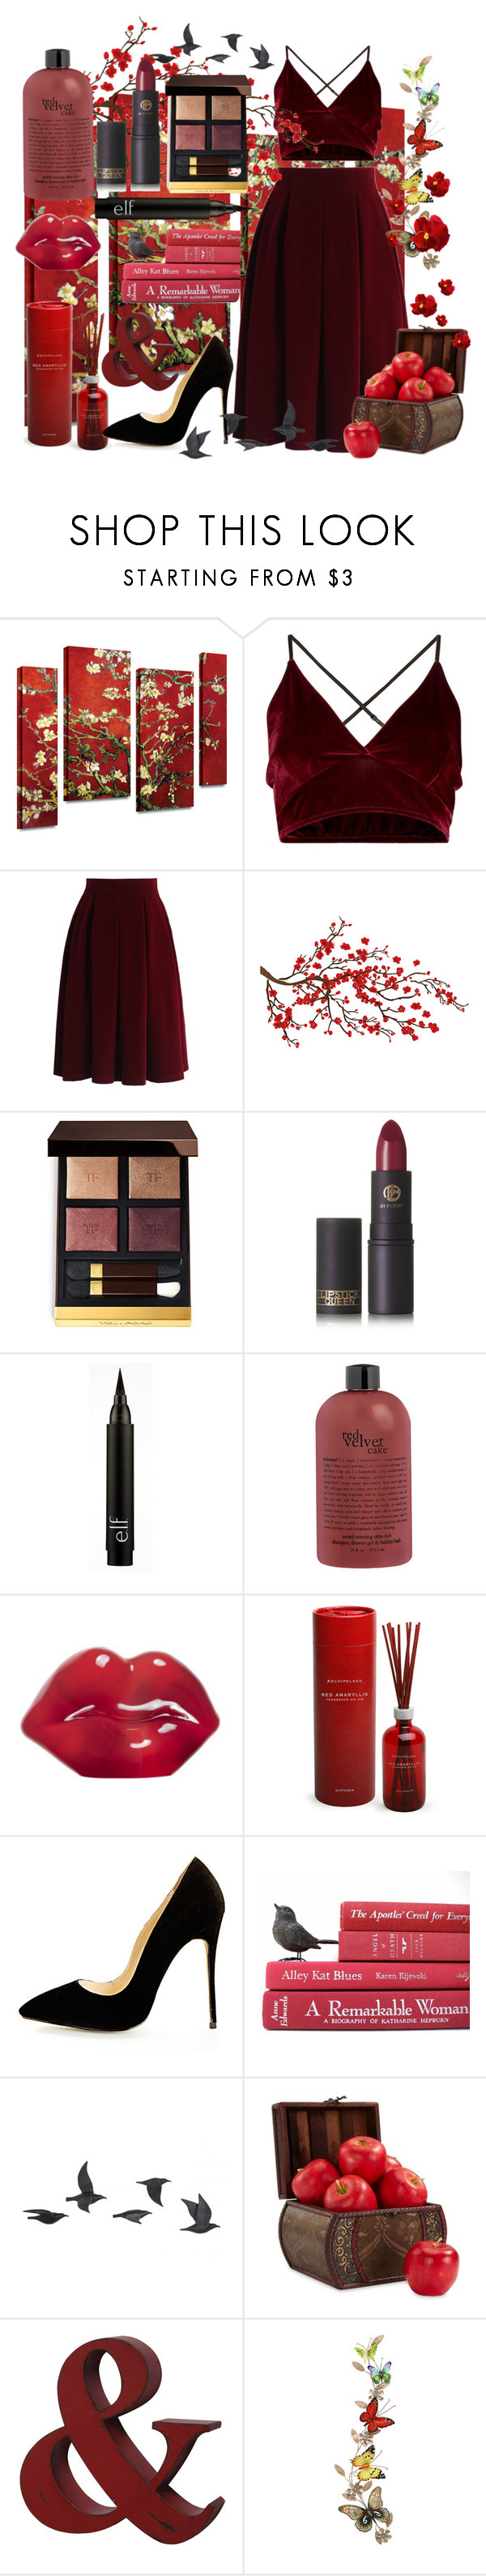 """A Velvet Secret"" by ambermarie-b ❤ liked on Polyvore featuring Chicwish, Brewster Home Fashions, Tom Ford, Lipstick Queen, Kosta Boda, Archipelago Botanicals, Jayson Home, Nearly Natural and Benzara"